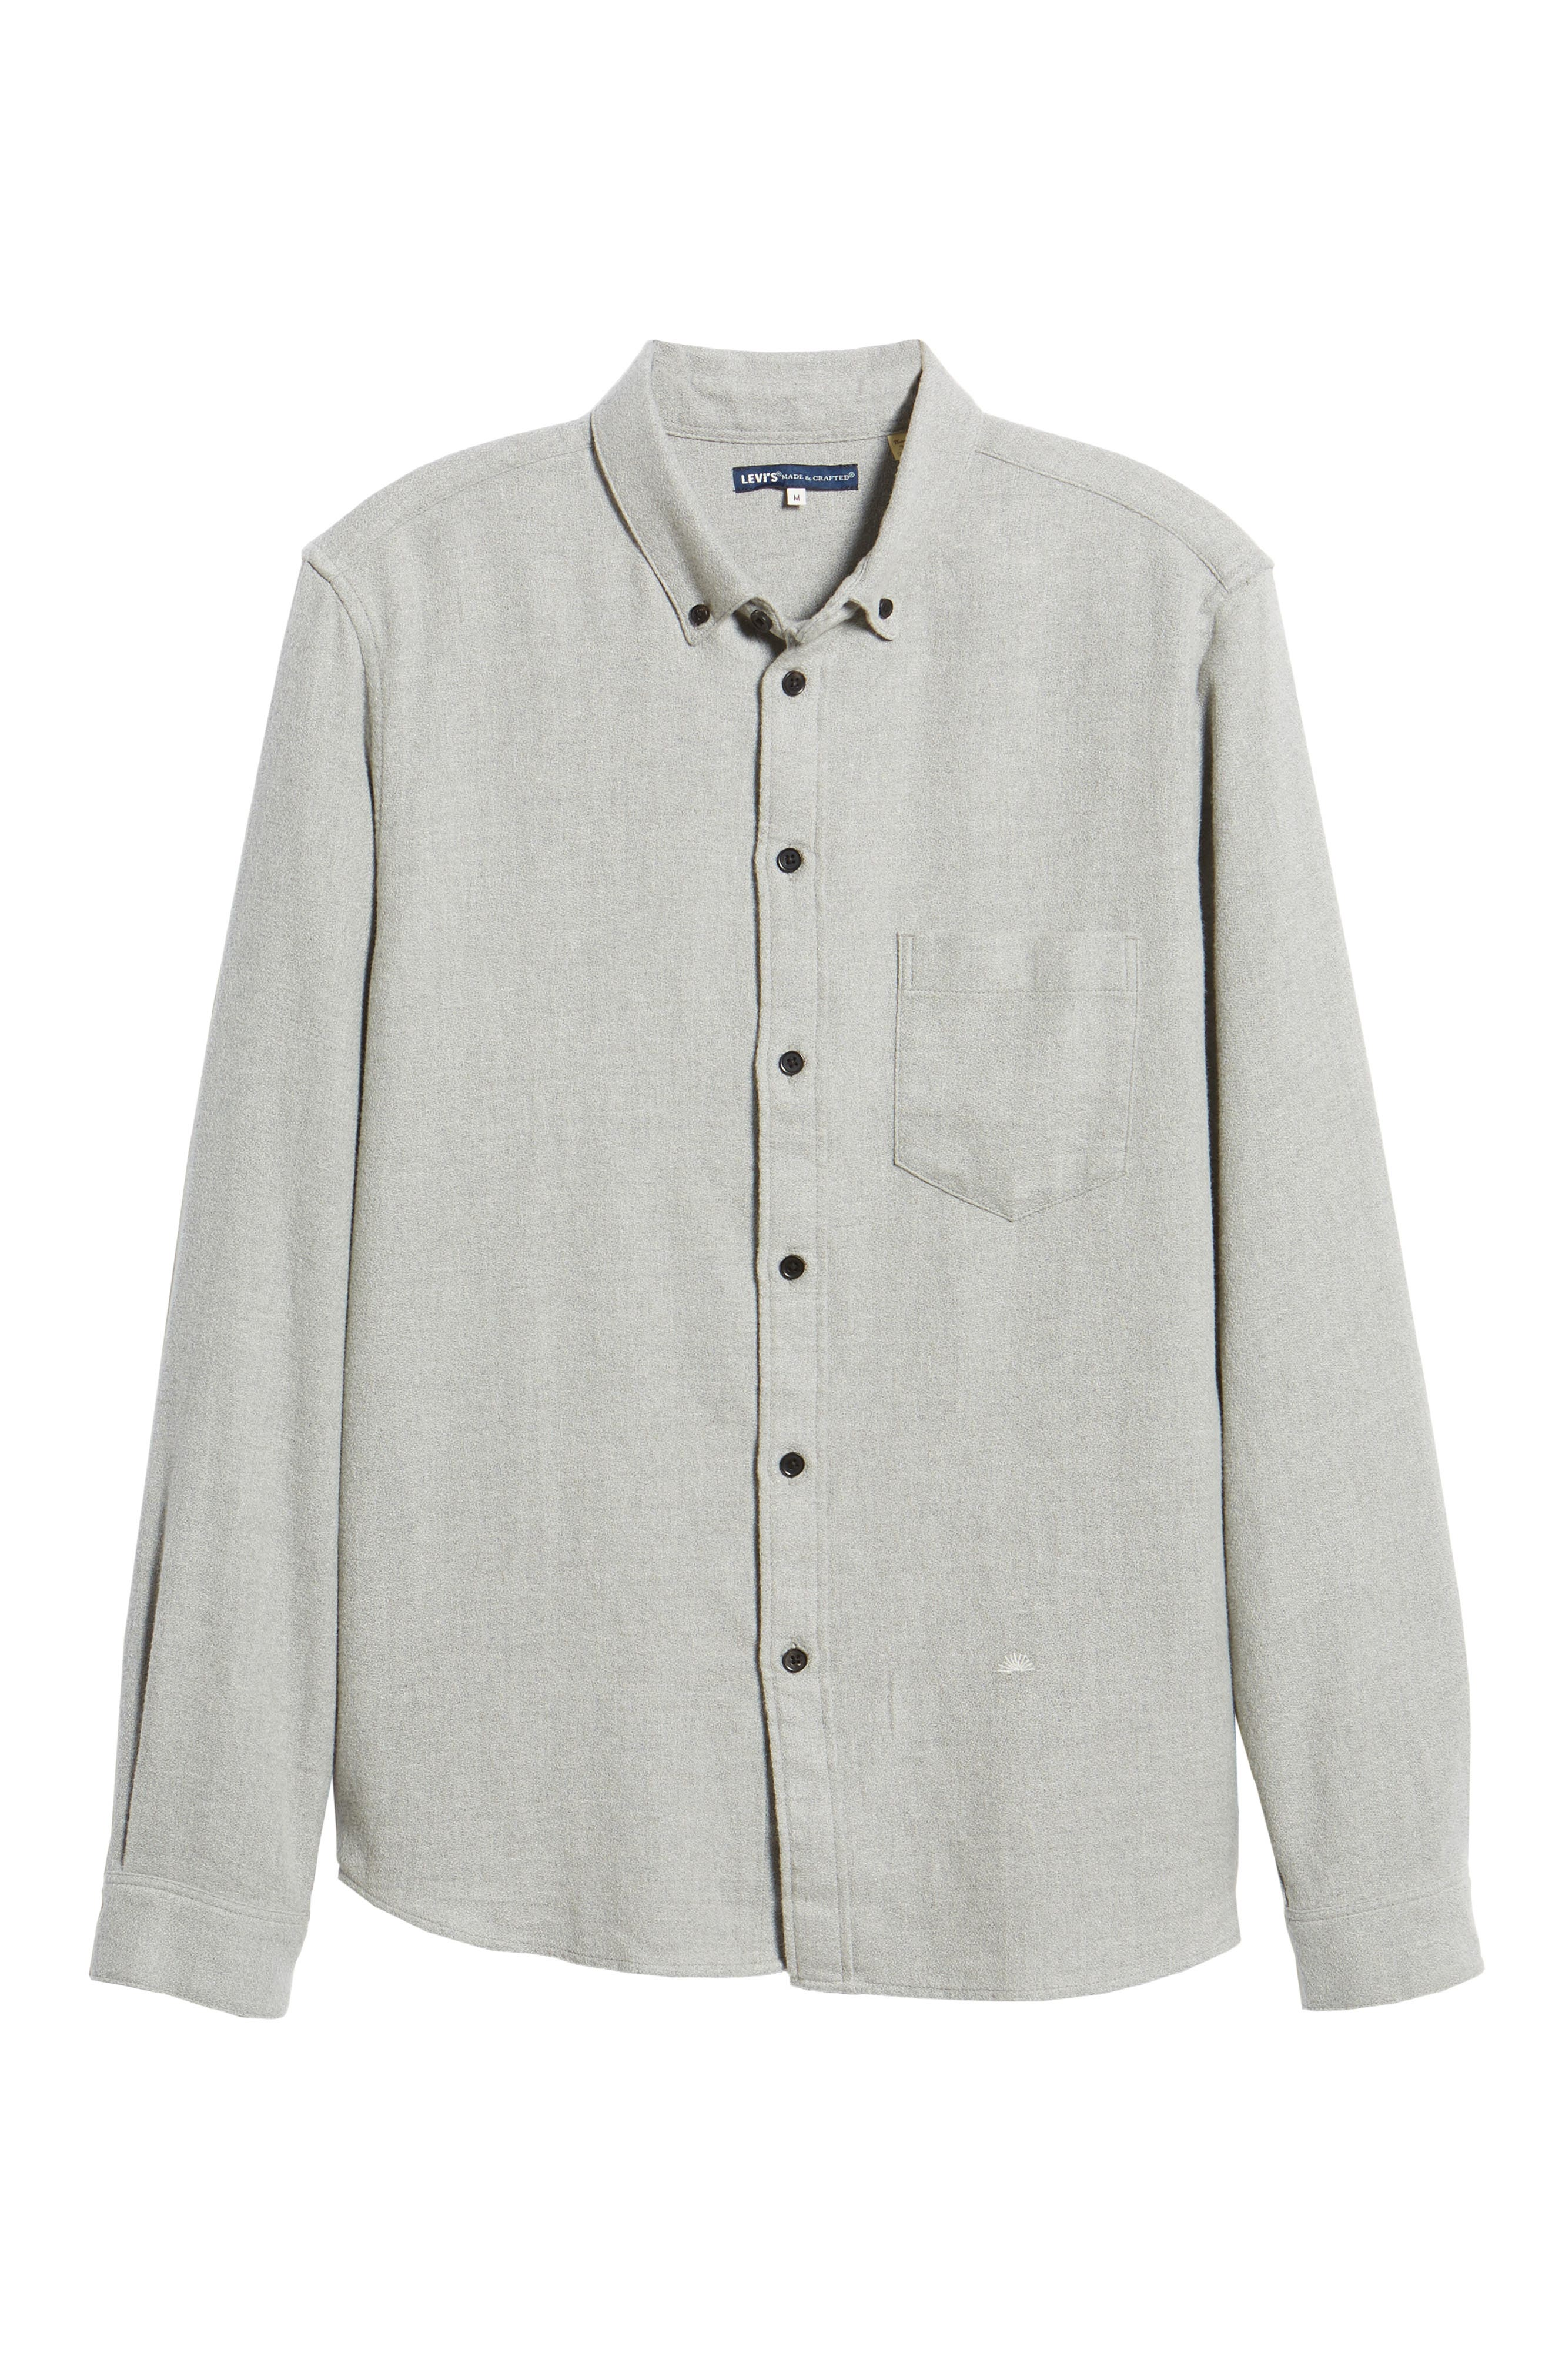 Levi's<sup>®</sup> Made & Crafted Regular Fit Mélange Shirt,                             Alternate thumbnail 5, color,                             020